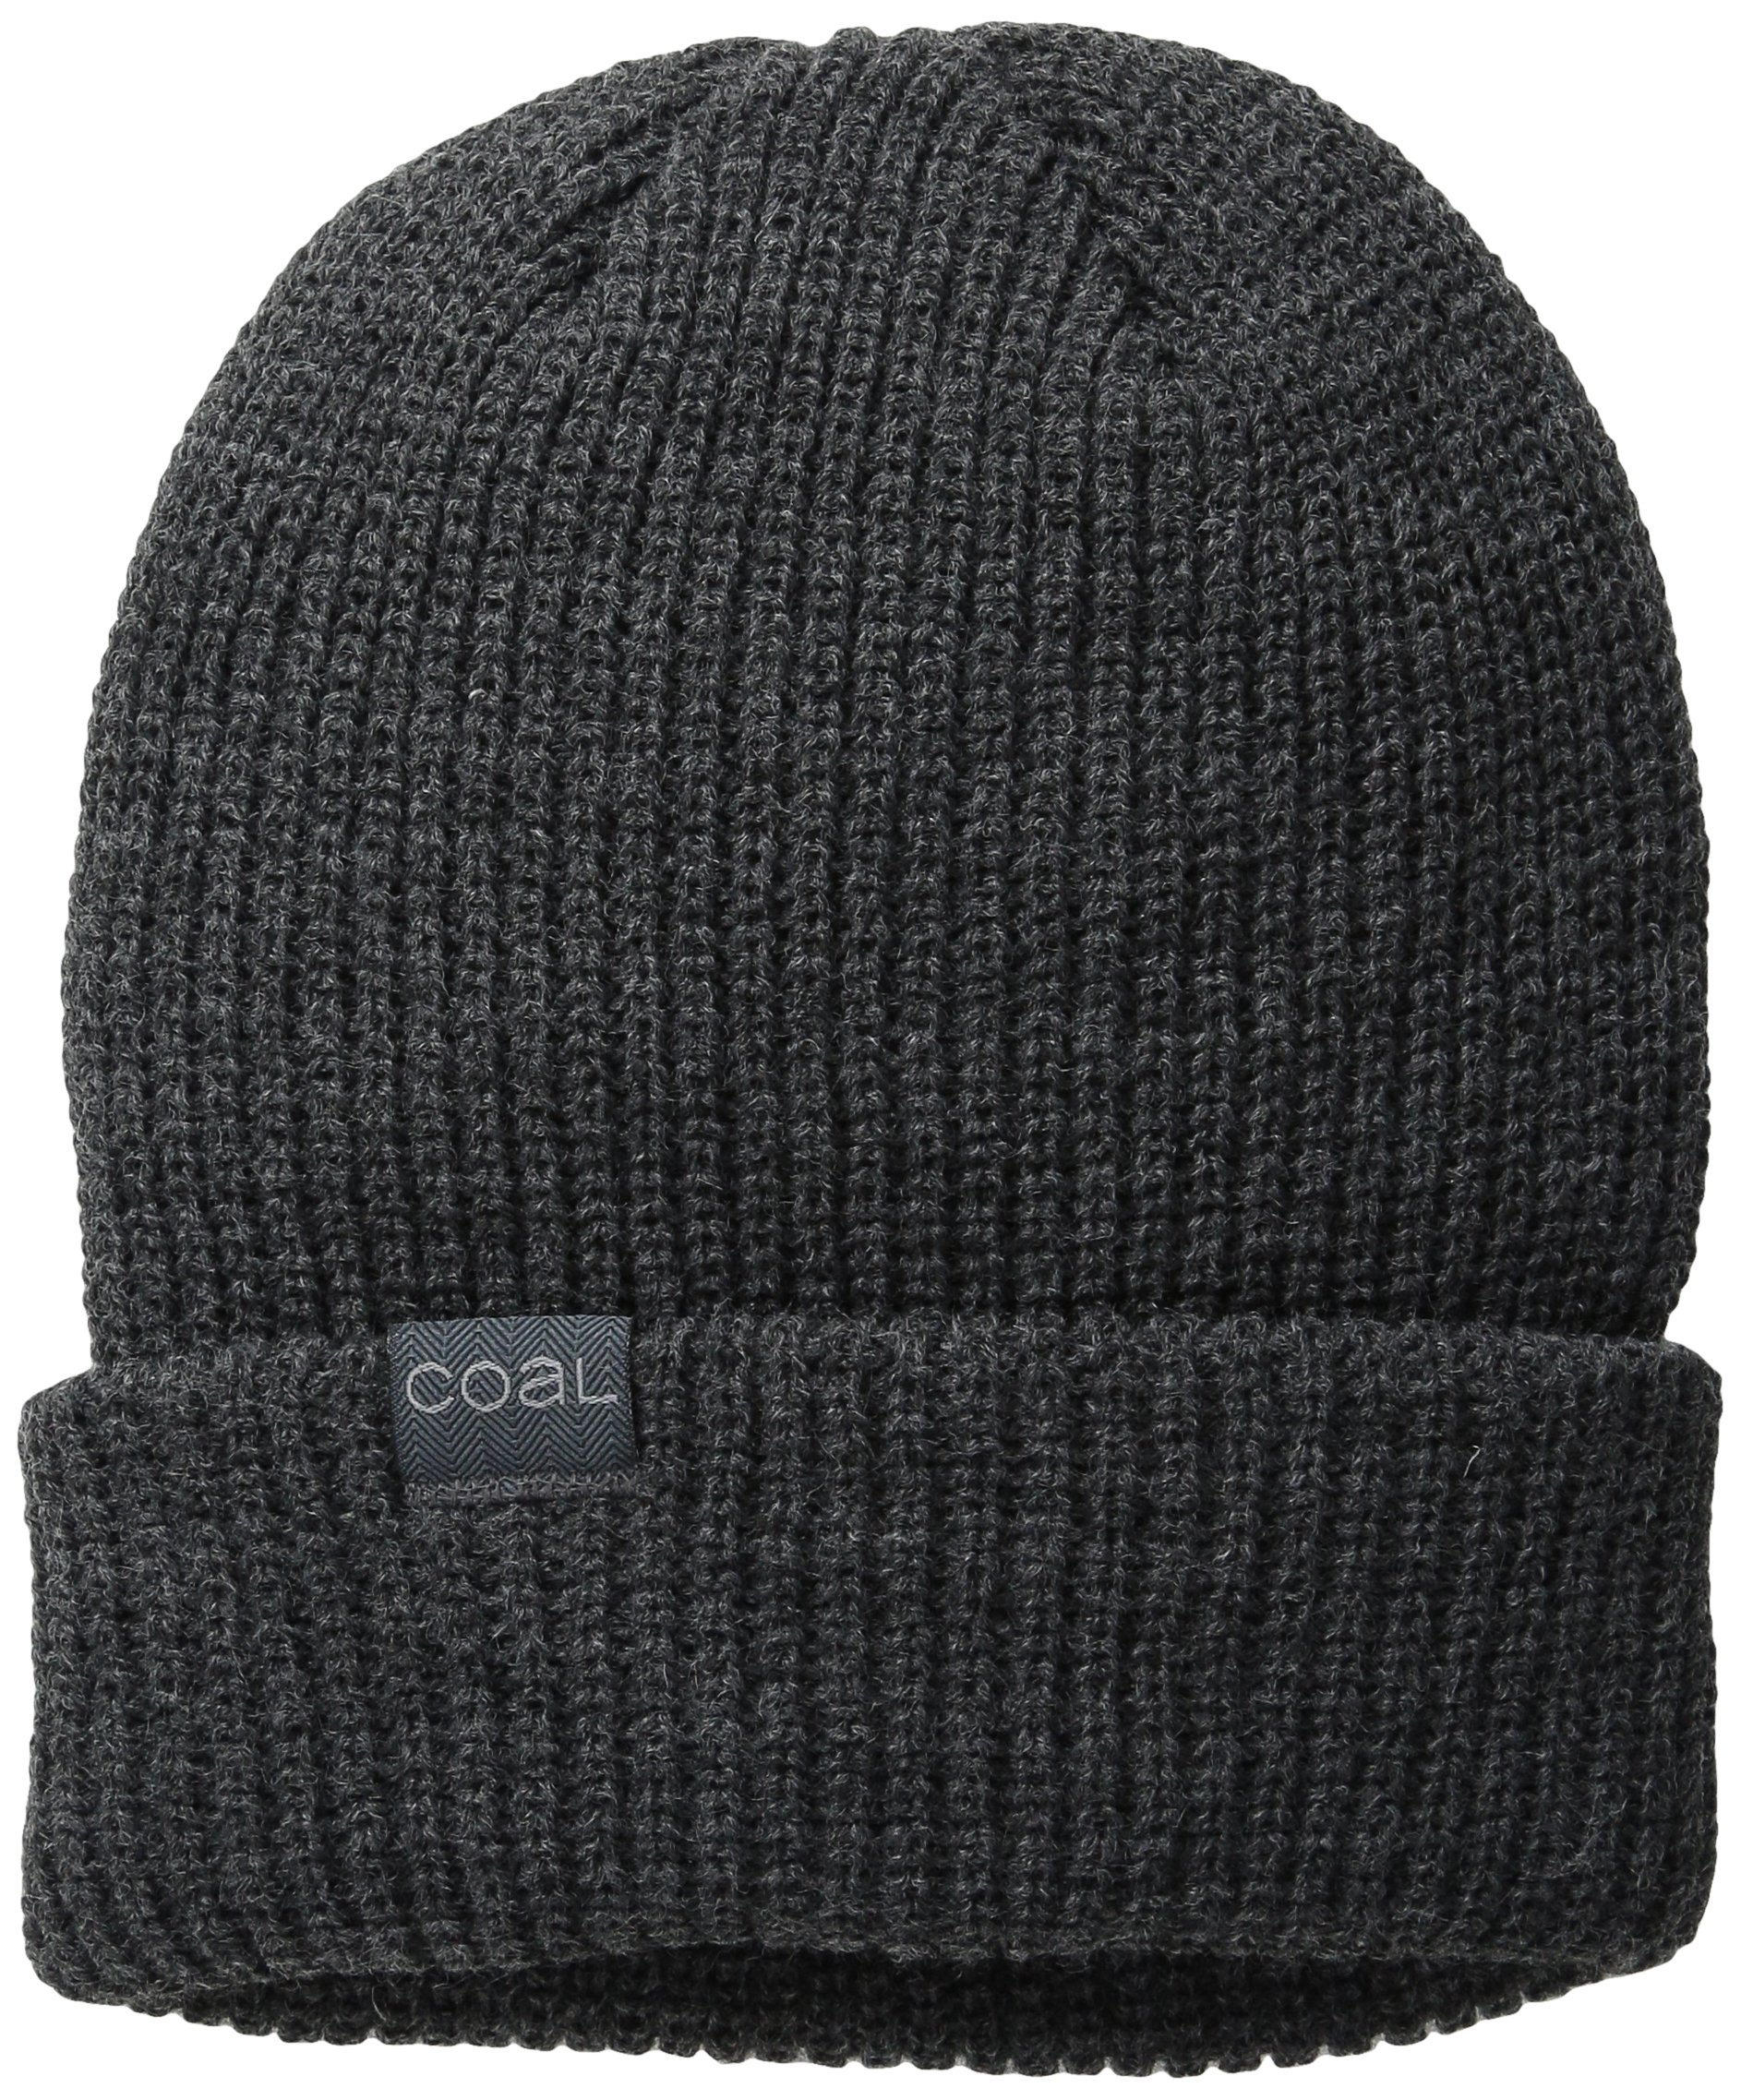 The Stanley Fine Knit Beanie Hat, Charcoal, One Size